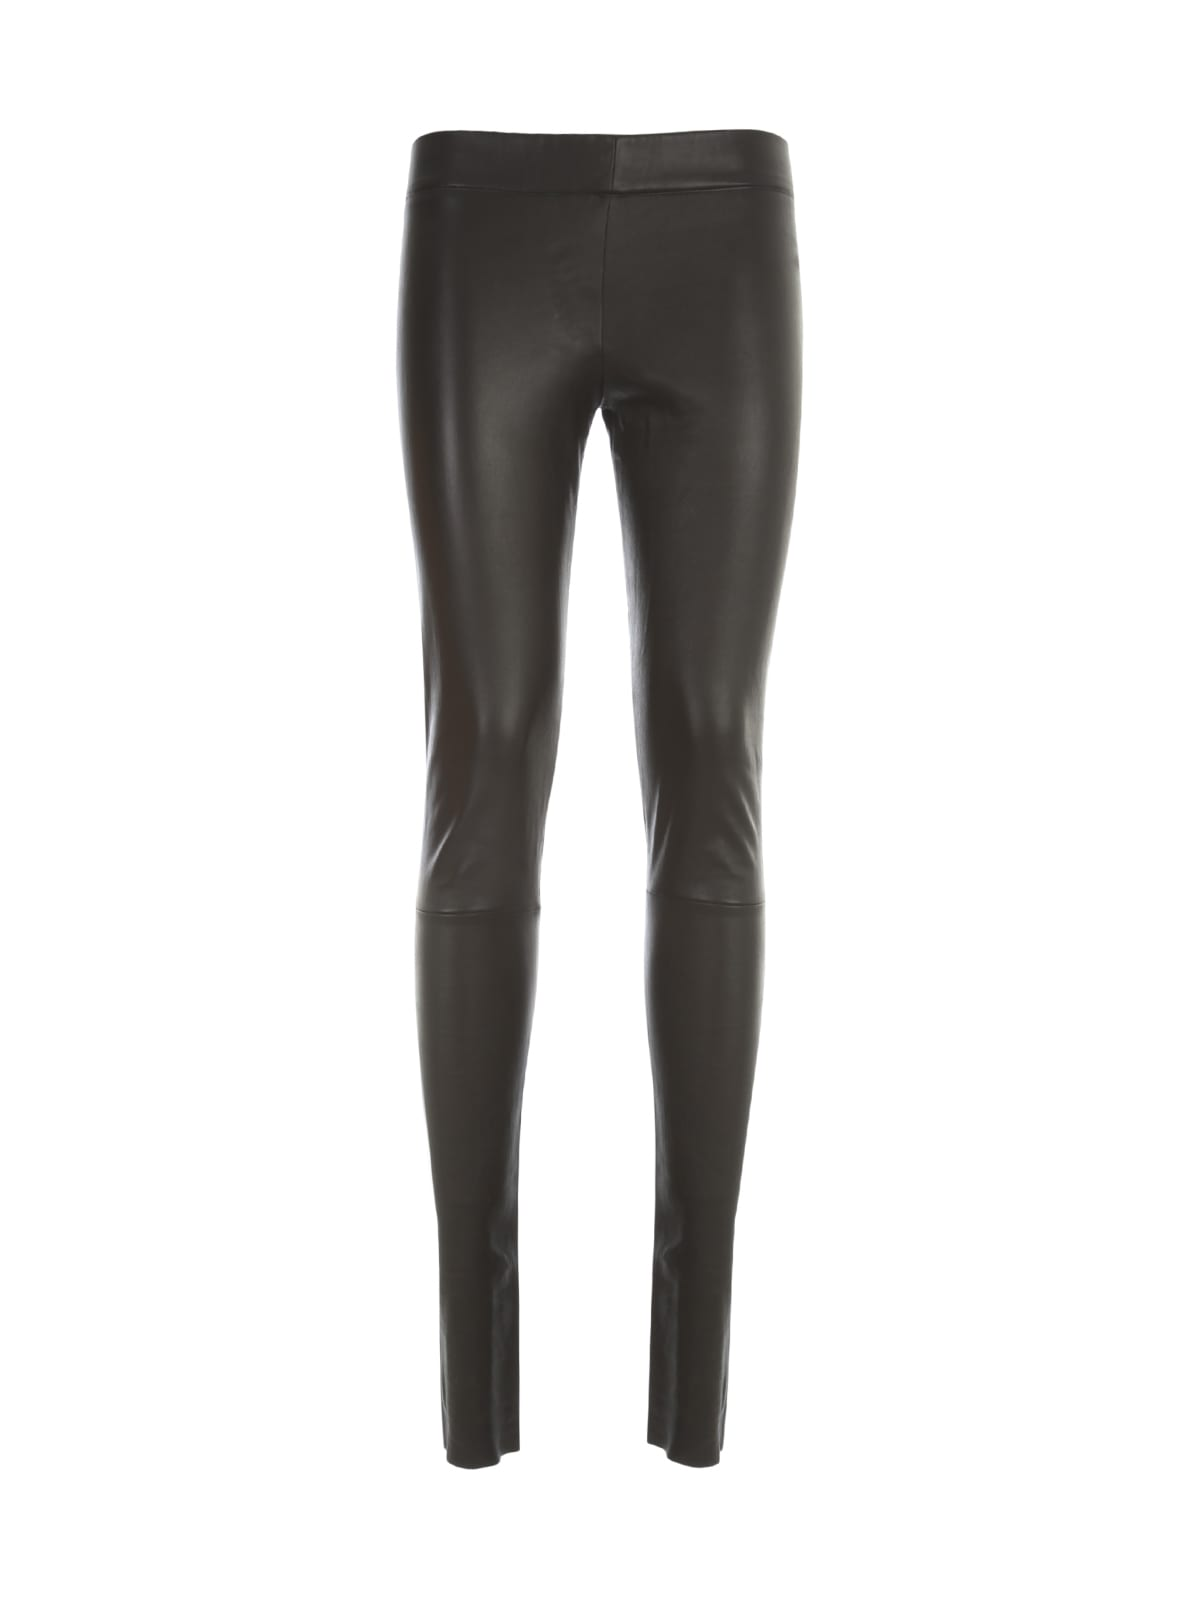 Sylvie Schimmel Clothing STRETCH LEATHER LEGGINGS PANTS